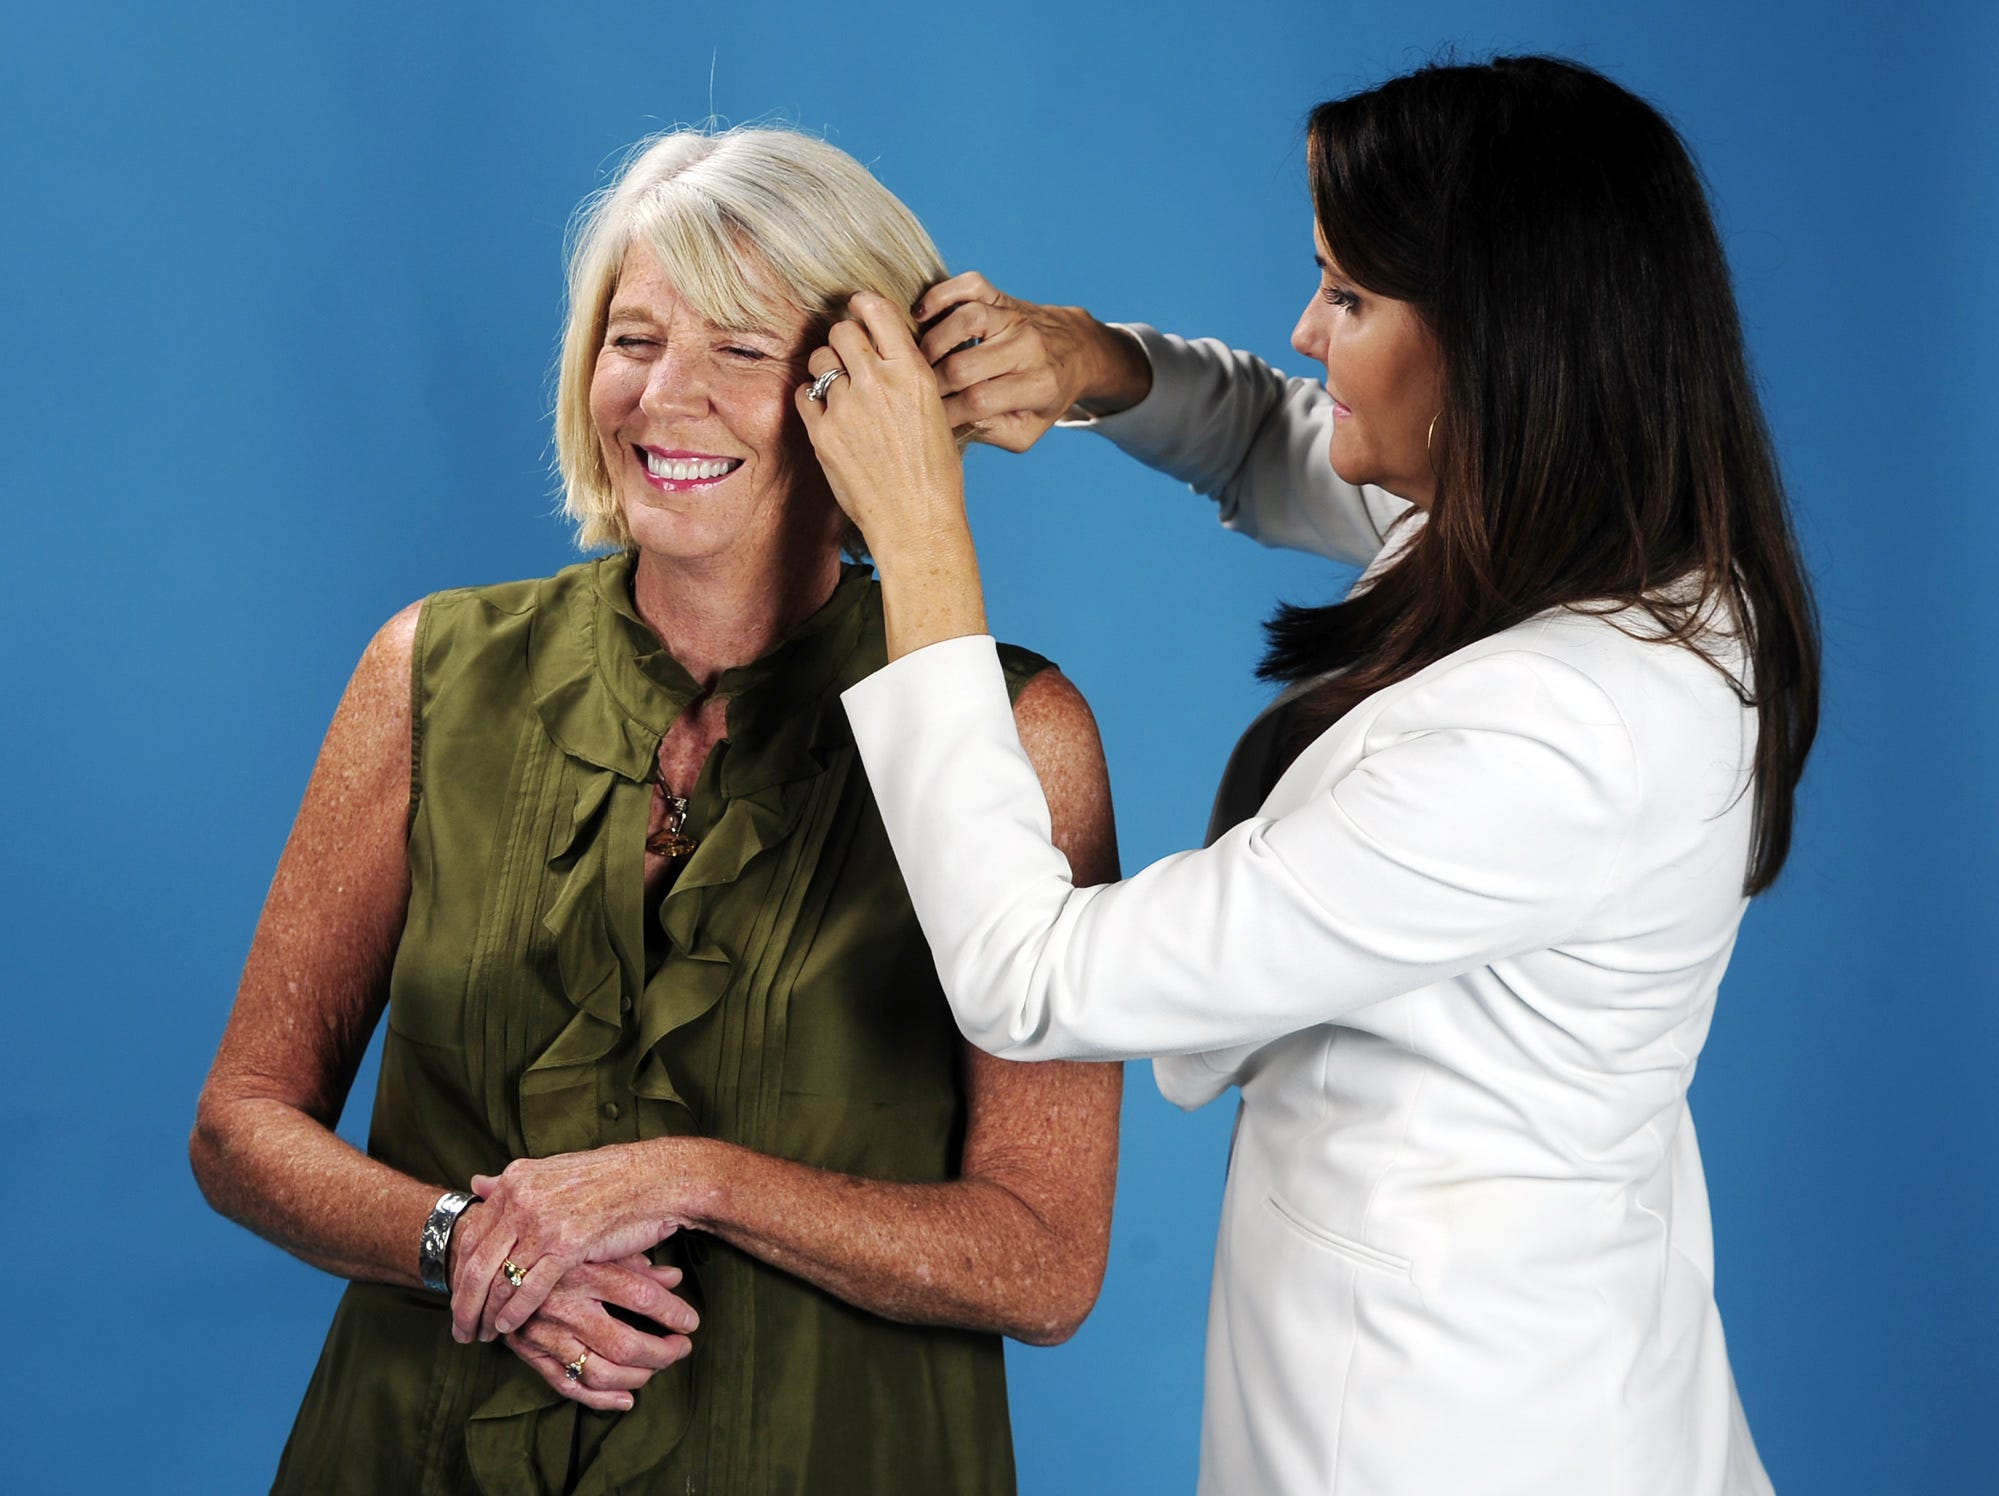 Cathi Aycock, right, works on the hair of fellow reporter Mary Hance, aka Ms. Cheap, in the studio Oct. 12, 2013, for their new column photos.